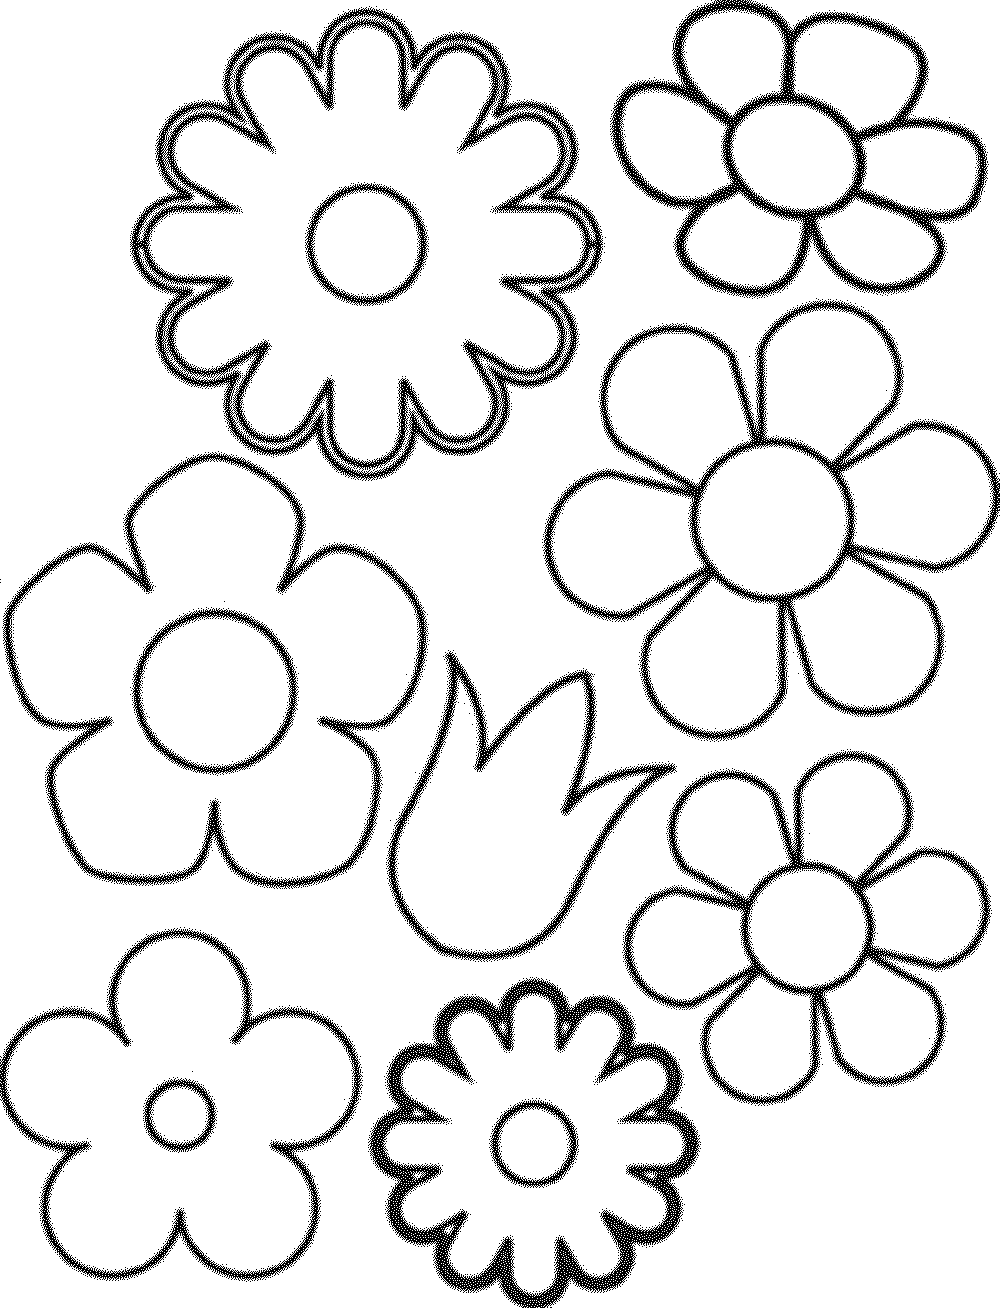 Some Common Variations of the Flower Coloring Pages